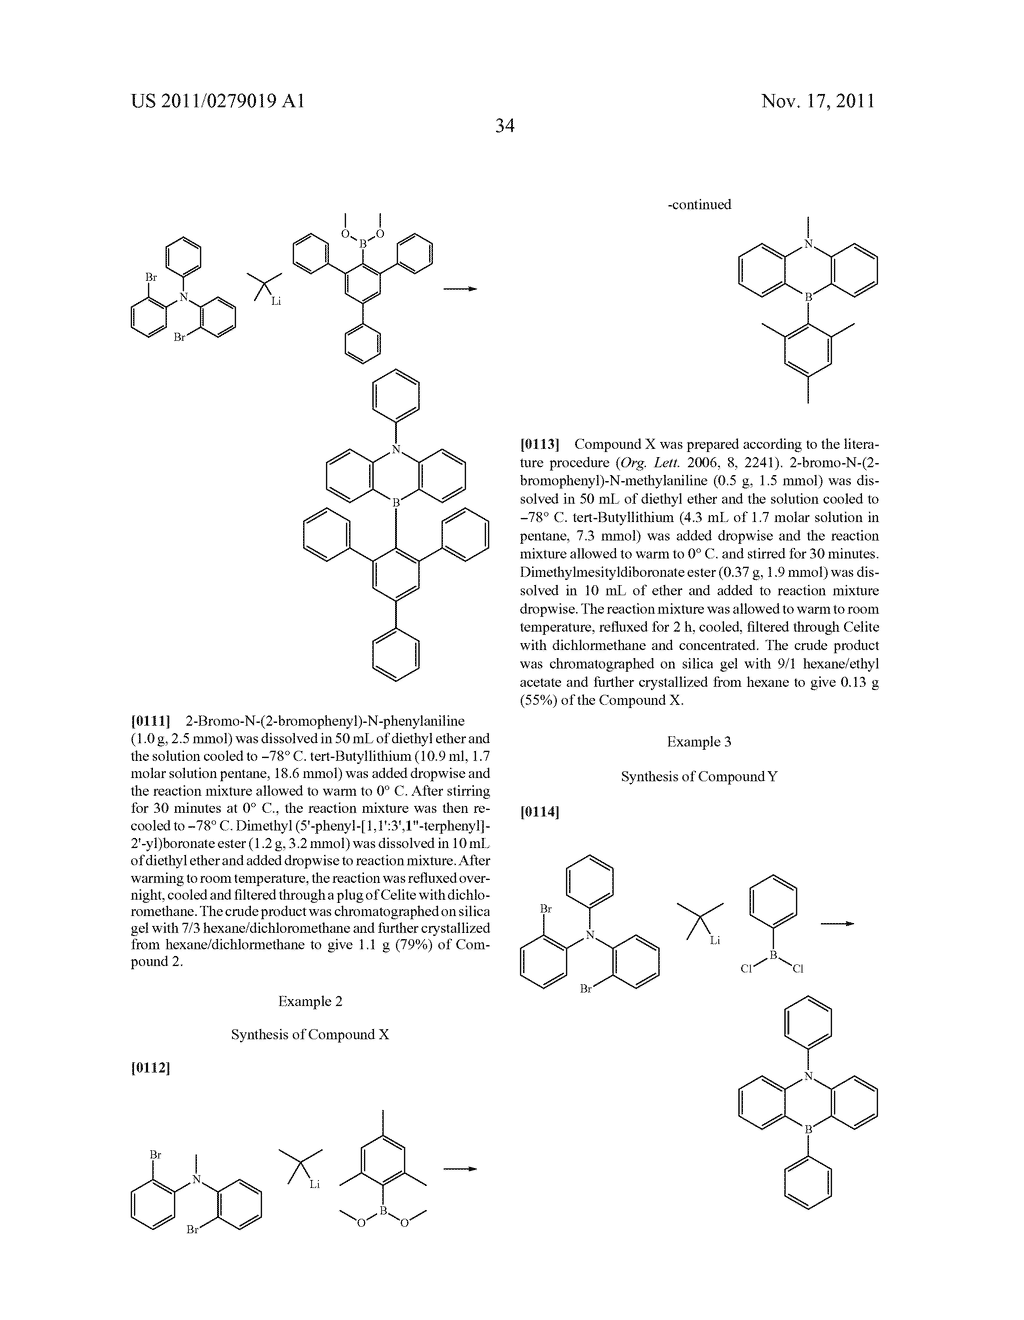 AZABORININE COMPOUNDS AS HOST MATERIALS AND DOPANTS FOR PHOLEDS - diagram, schematic, and image 41